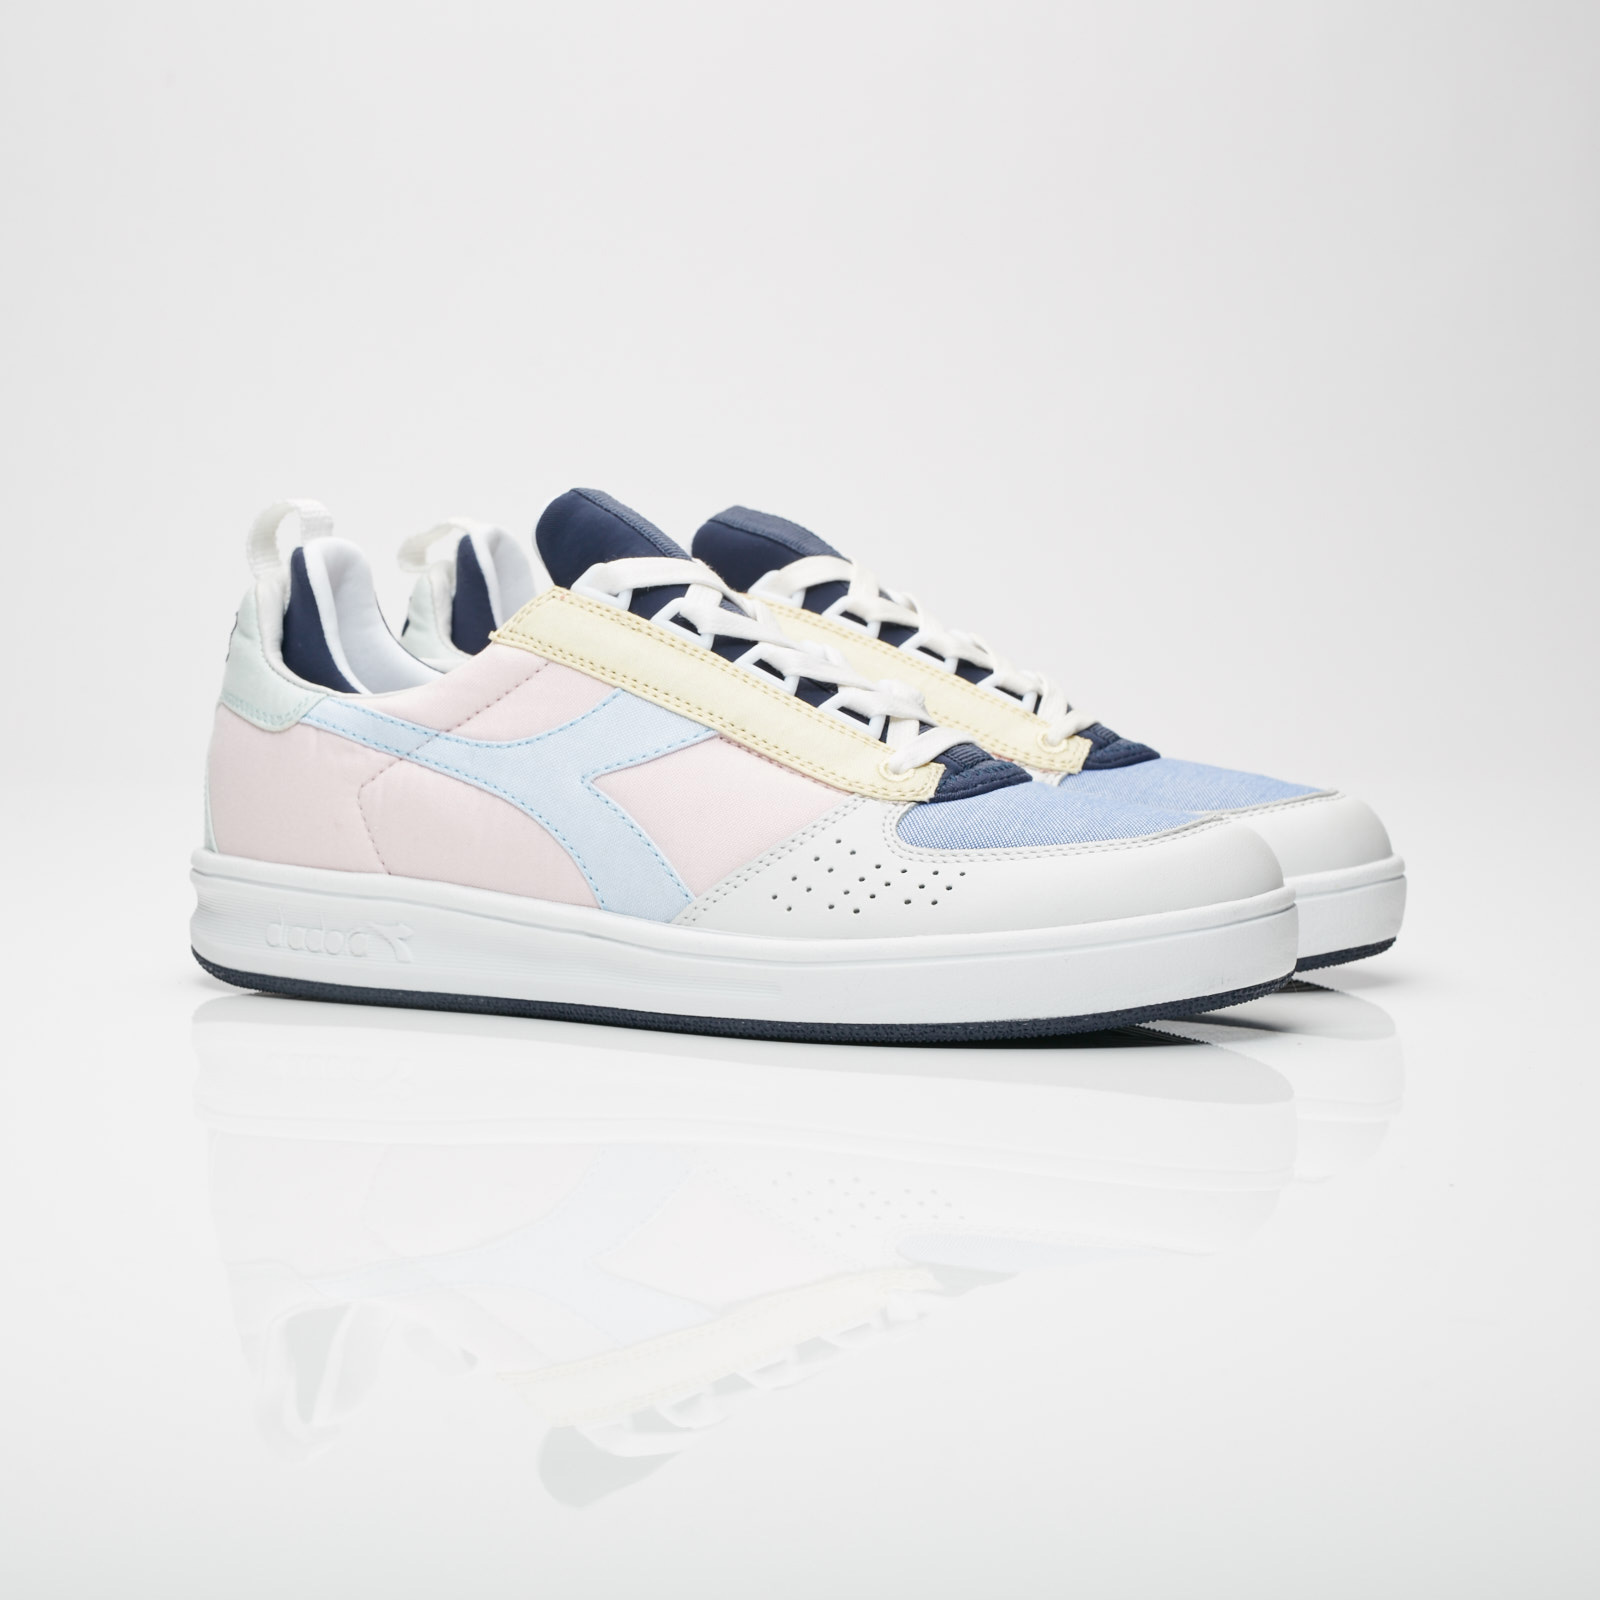 B ELITE SOCKS - FOOTWEAR - Low-tops & sneakers Diadora RX0uZa